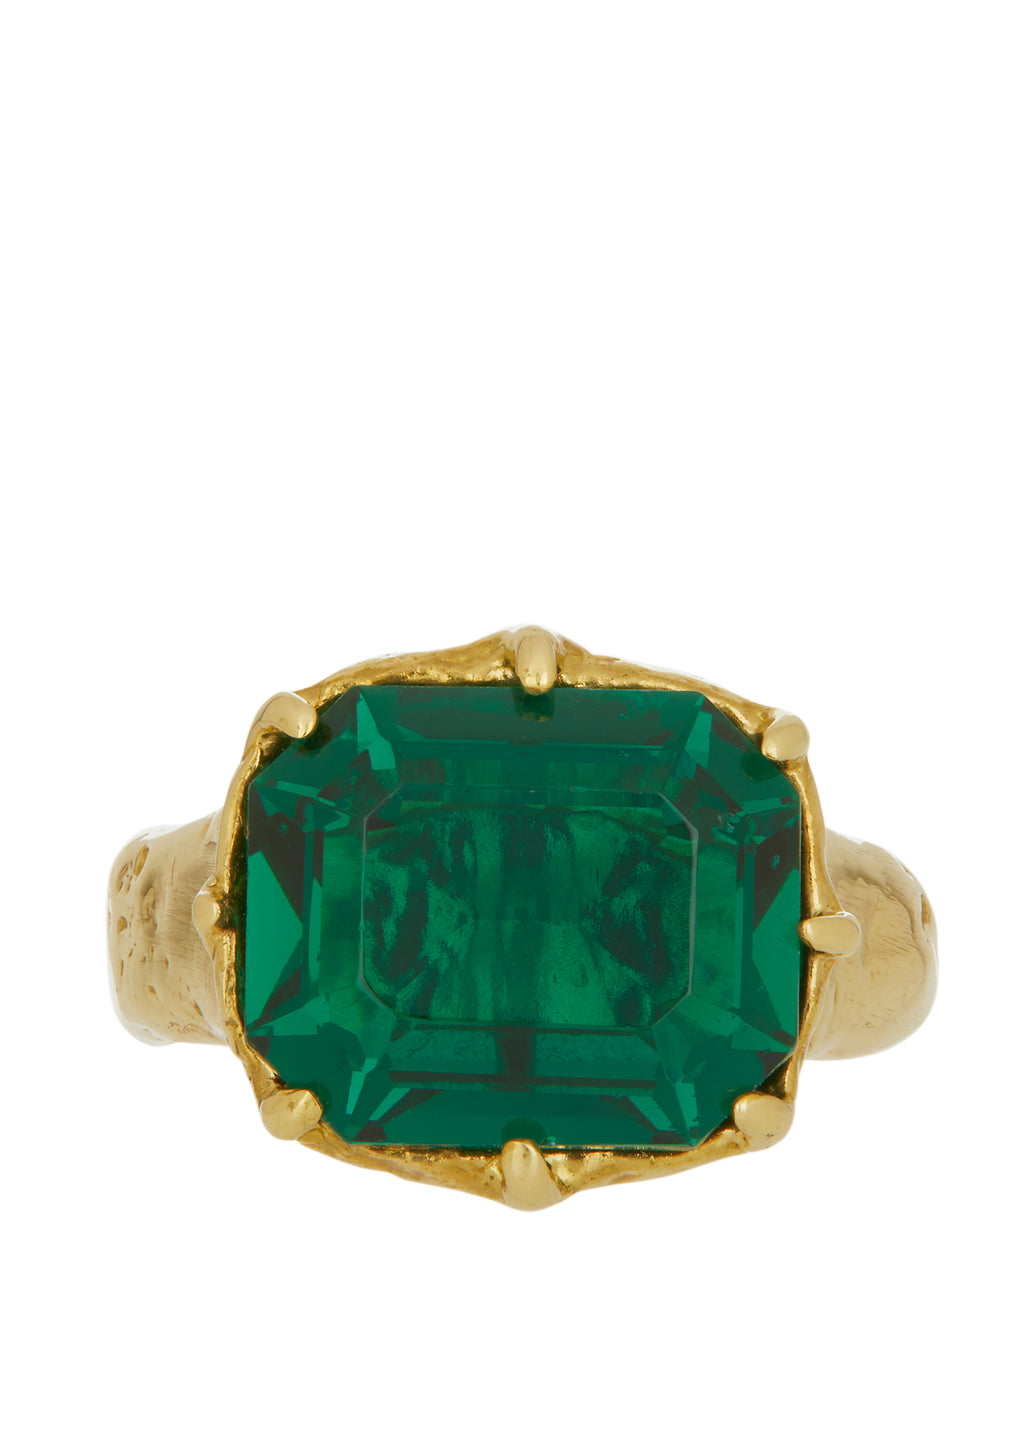 Majestic Ring - Emerald